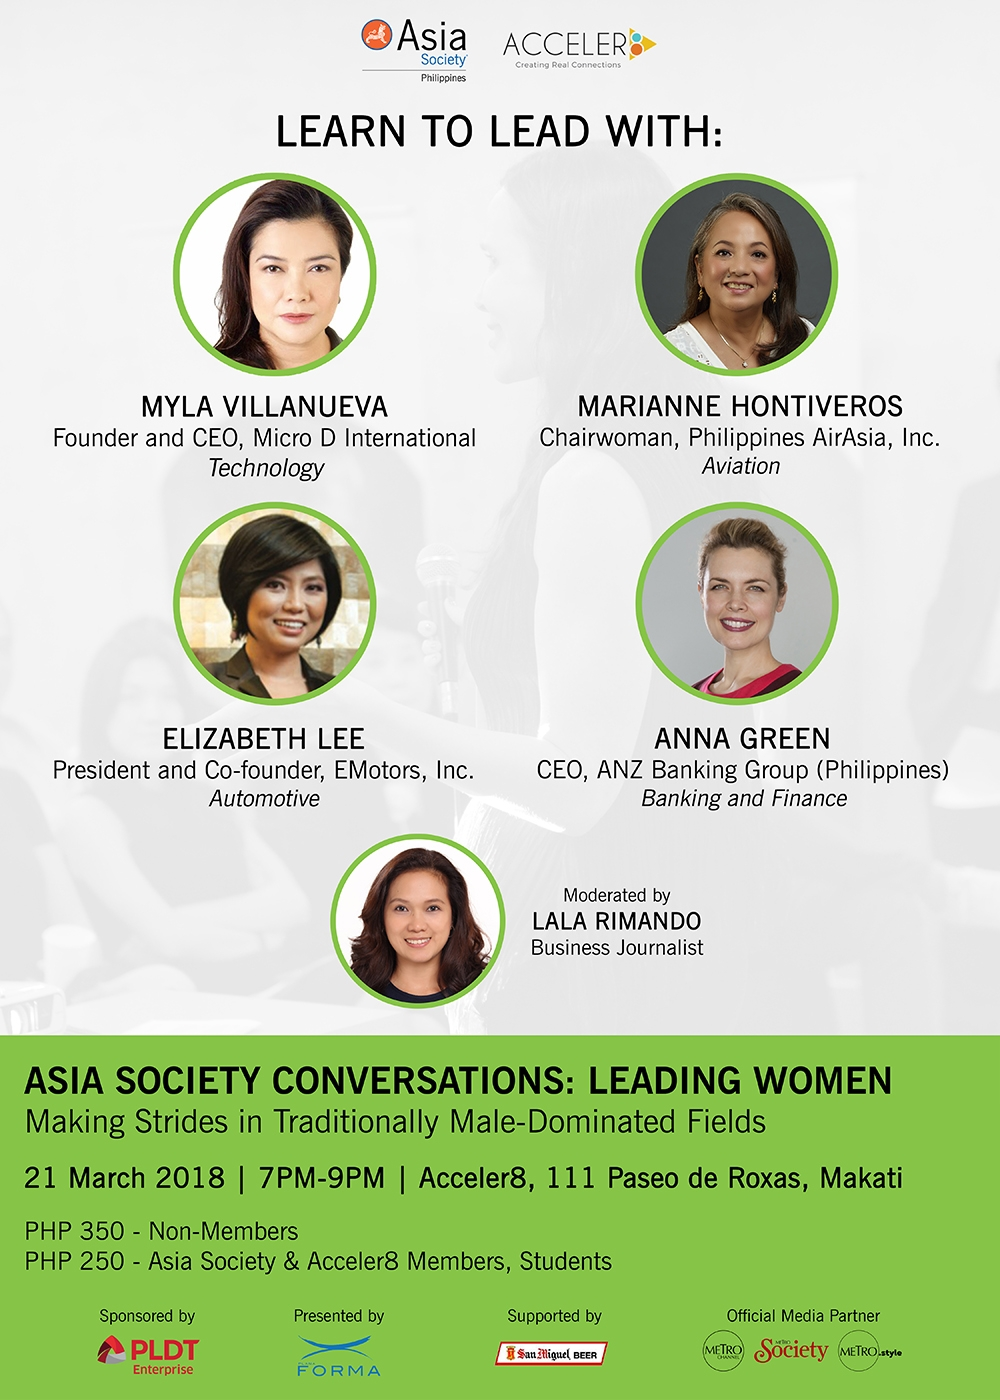 Asia Society Conversations: Leading Women | 21 March 2018 | Accceler8